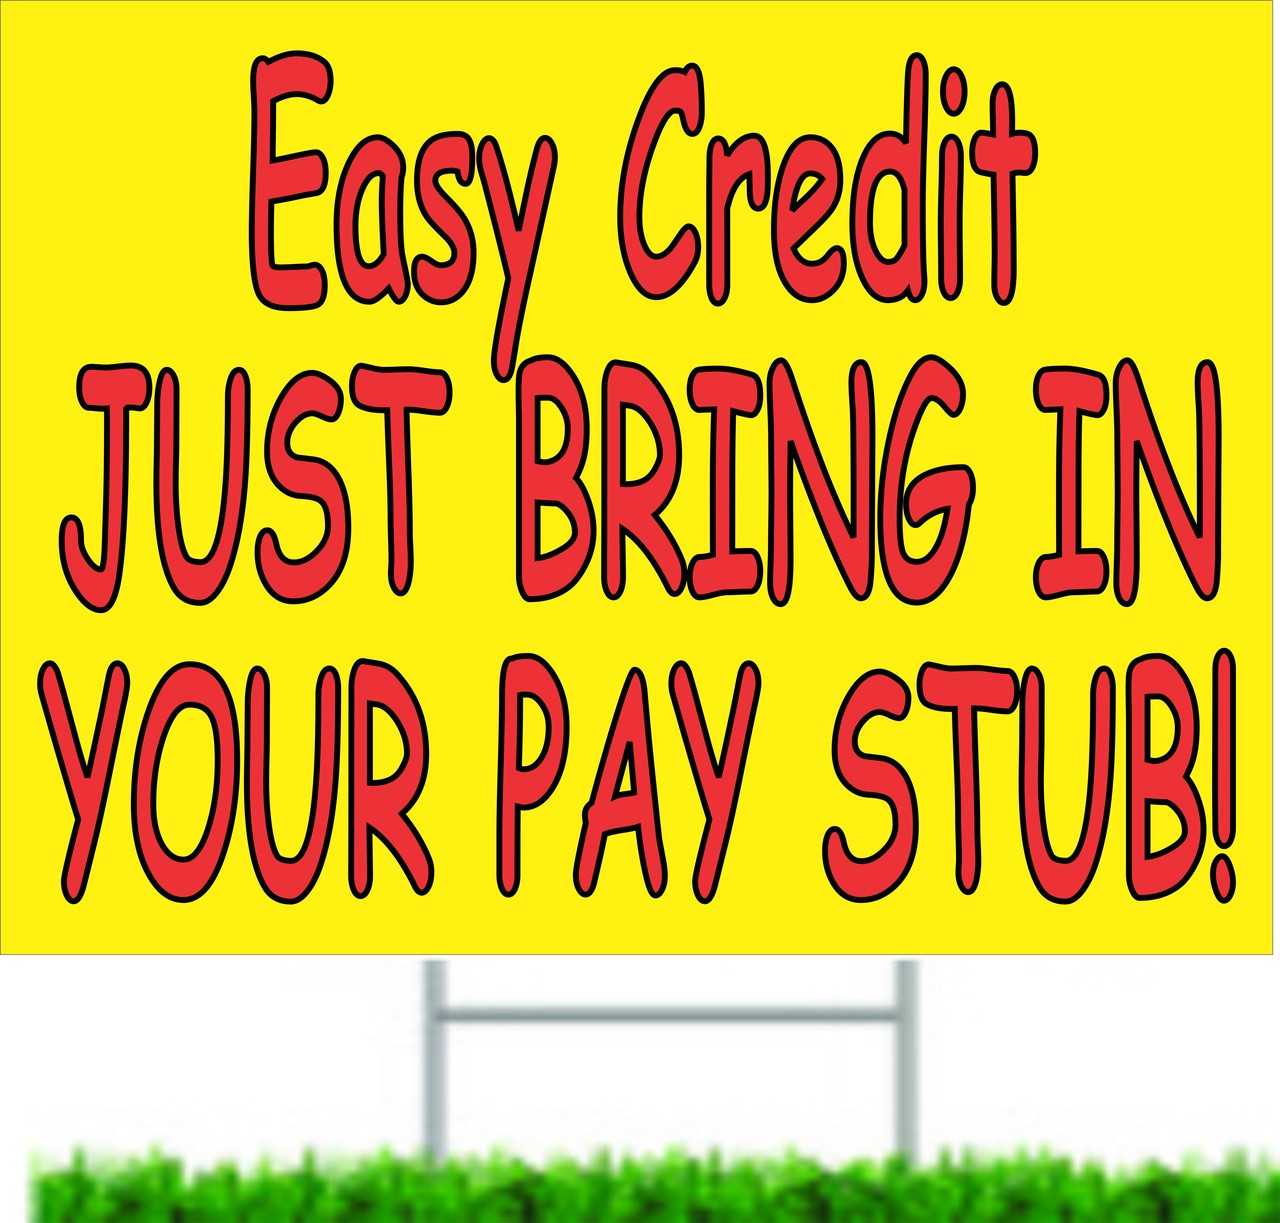 Easy Credit Just Bring Your Pay Stub Auto Dealer Yard Sign.